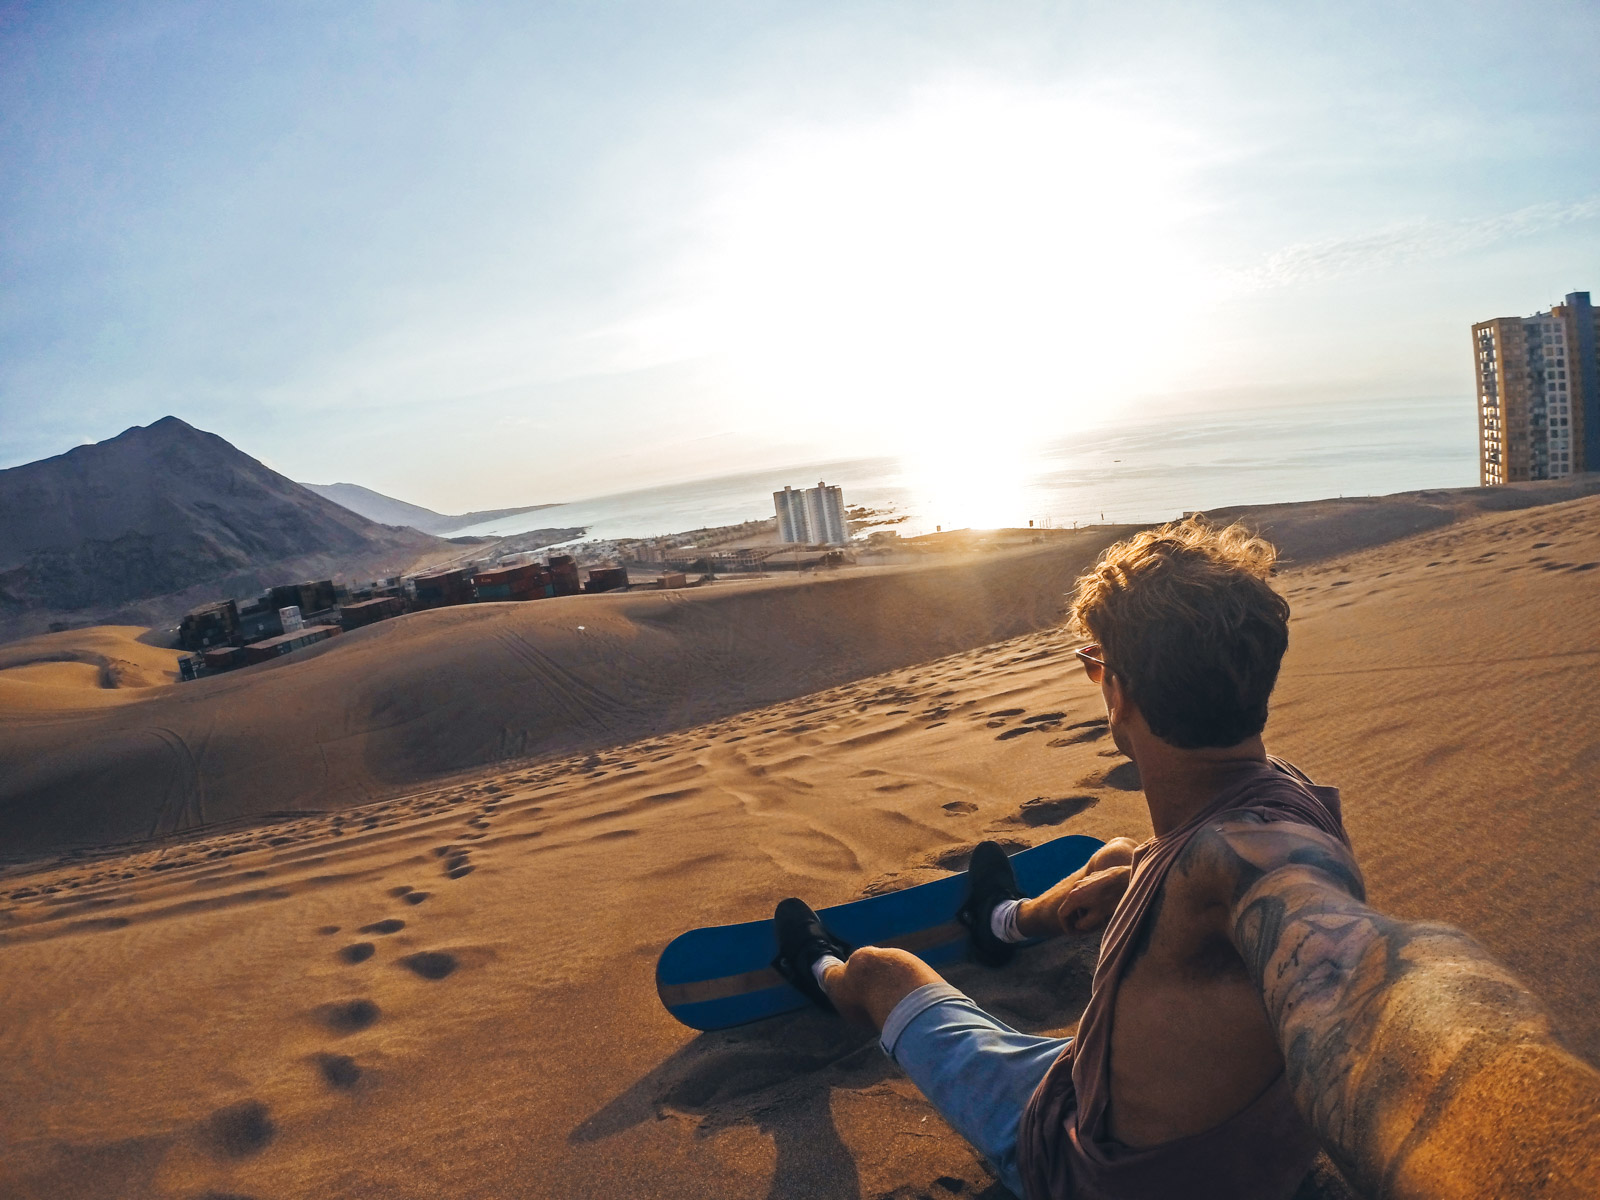 All you need to know for backpacking Iquique. Sand boarding the dunes of Iquique looking over the city. A must do in a group